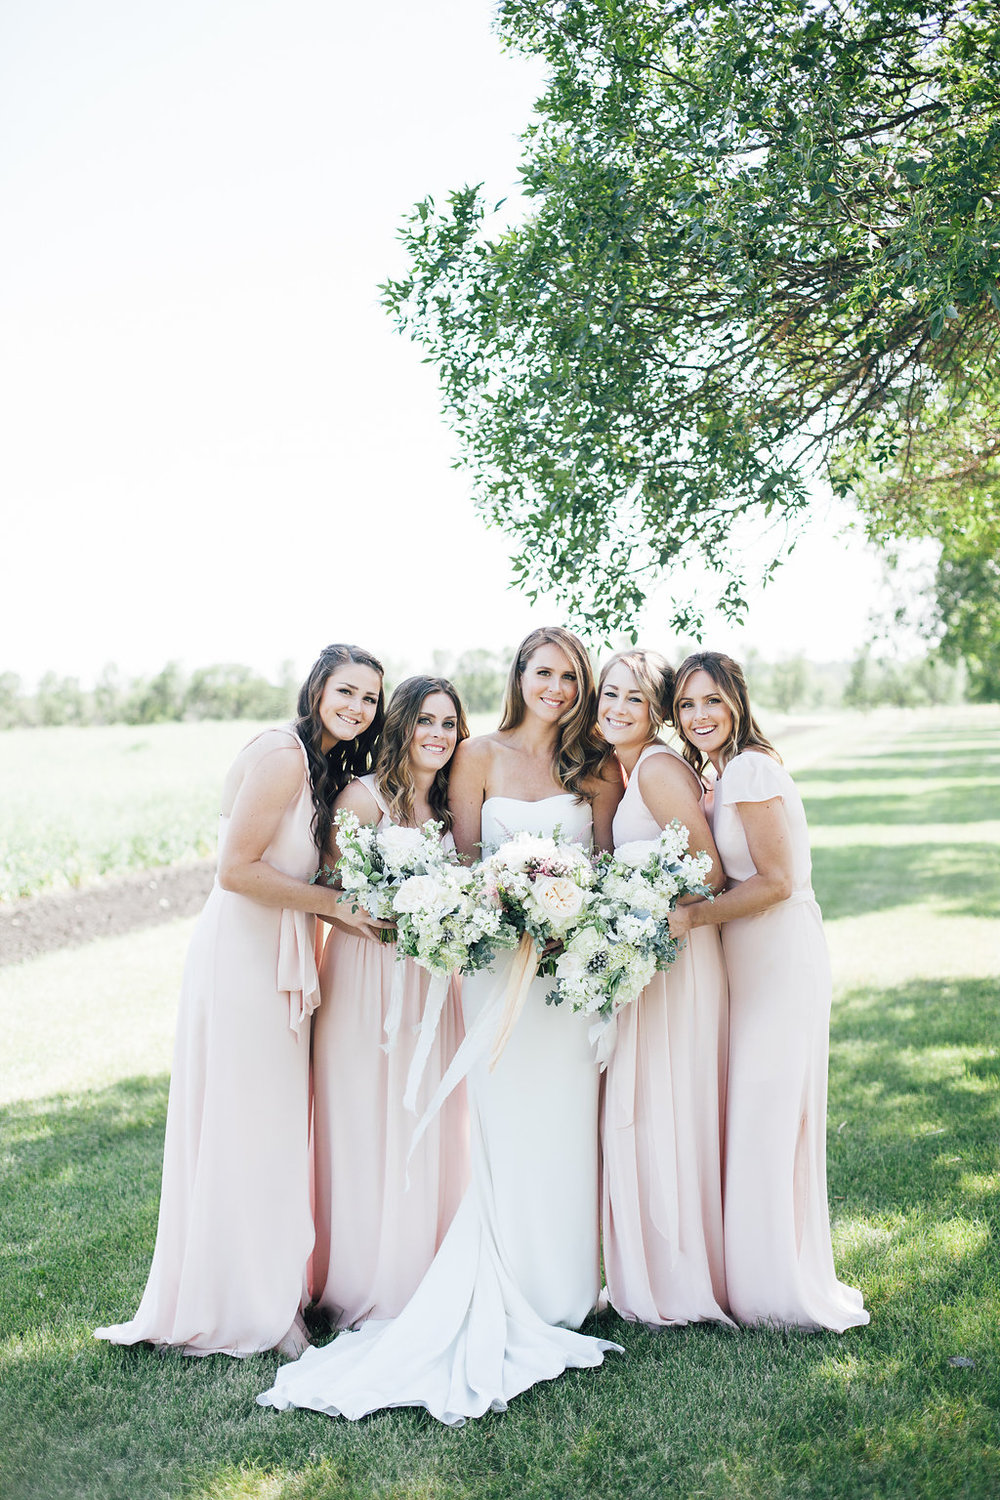 Blush Bridal Bouquets - Stone House Creative